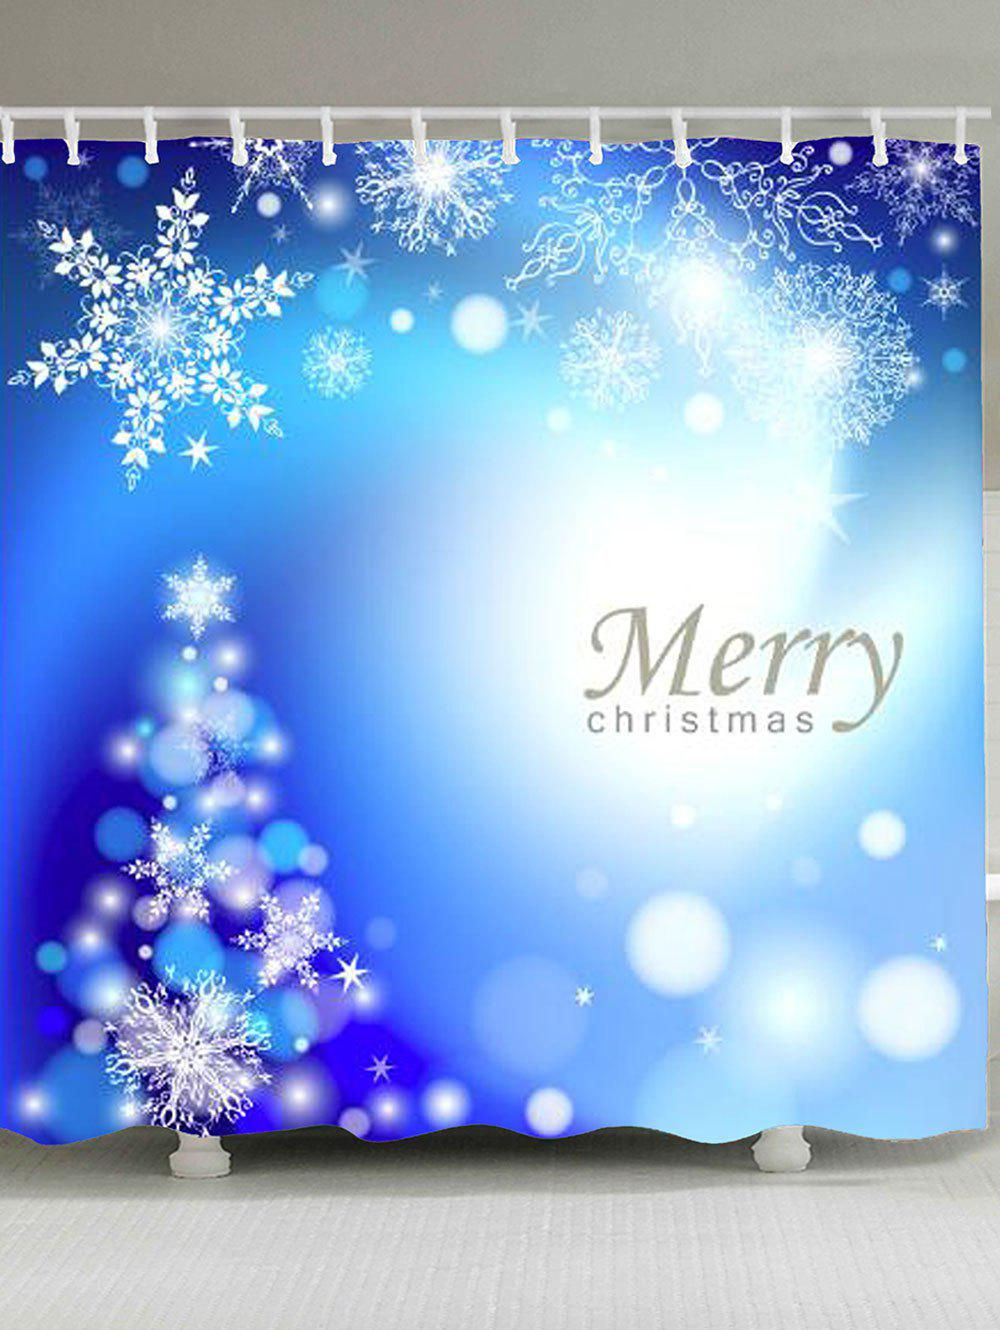 Christmas Snowflakes Patterned Shower Bath CurtainHOME<br><br>Size: W71 INCH * L71 INCH; Color: BLUE; Products Type: Shower Curtains; Materials: Polyester; Pattern: Snowflake; Style: Festival; Number of Hook Holes: W59 inch * L71 inch:10, W71 inch * L71 inch:12, W71 inch * L79 inch:12; Package Contents: 1 x Shower Curtain 1 x Hooks (Set);